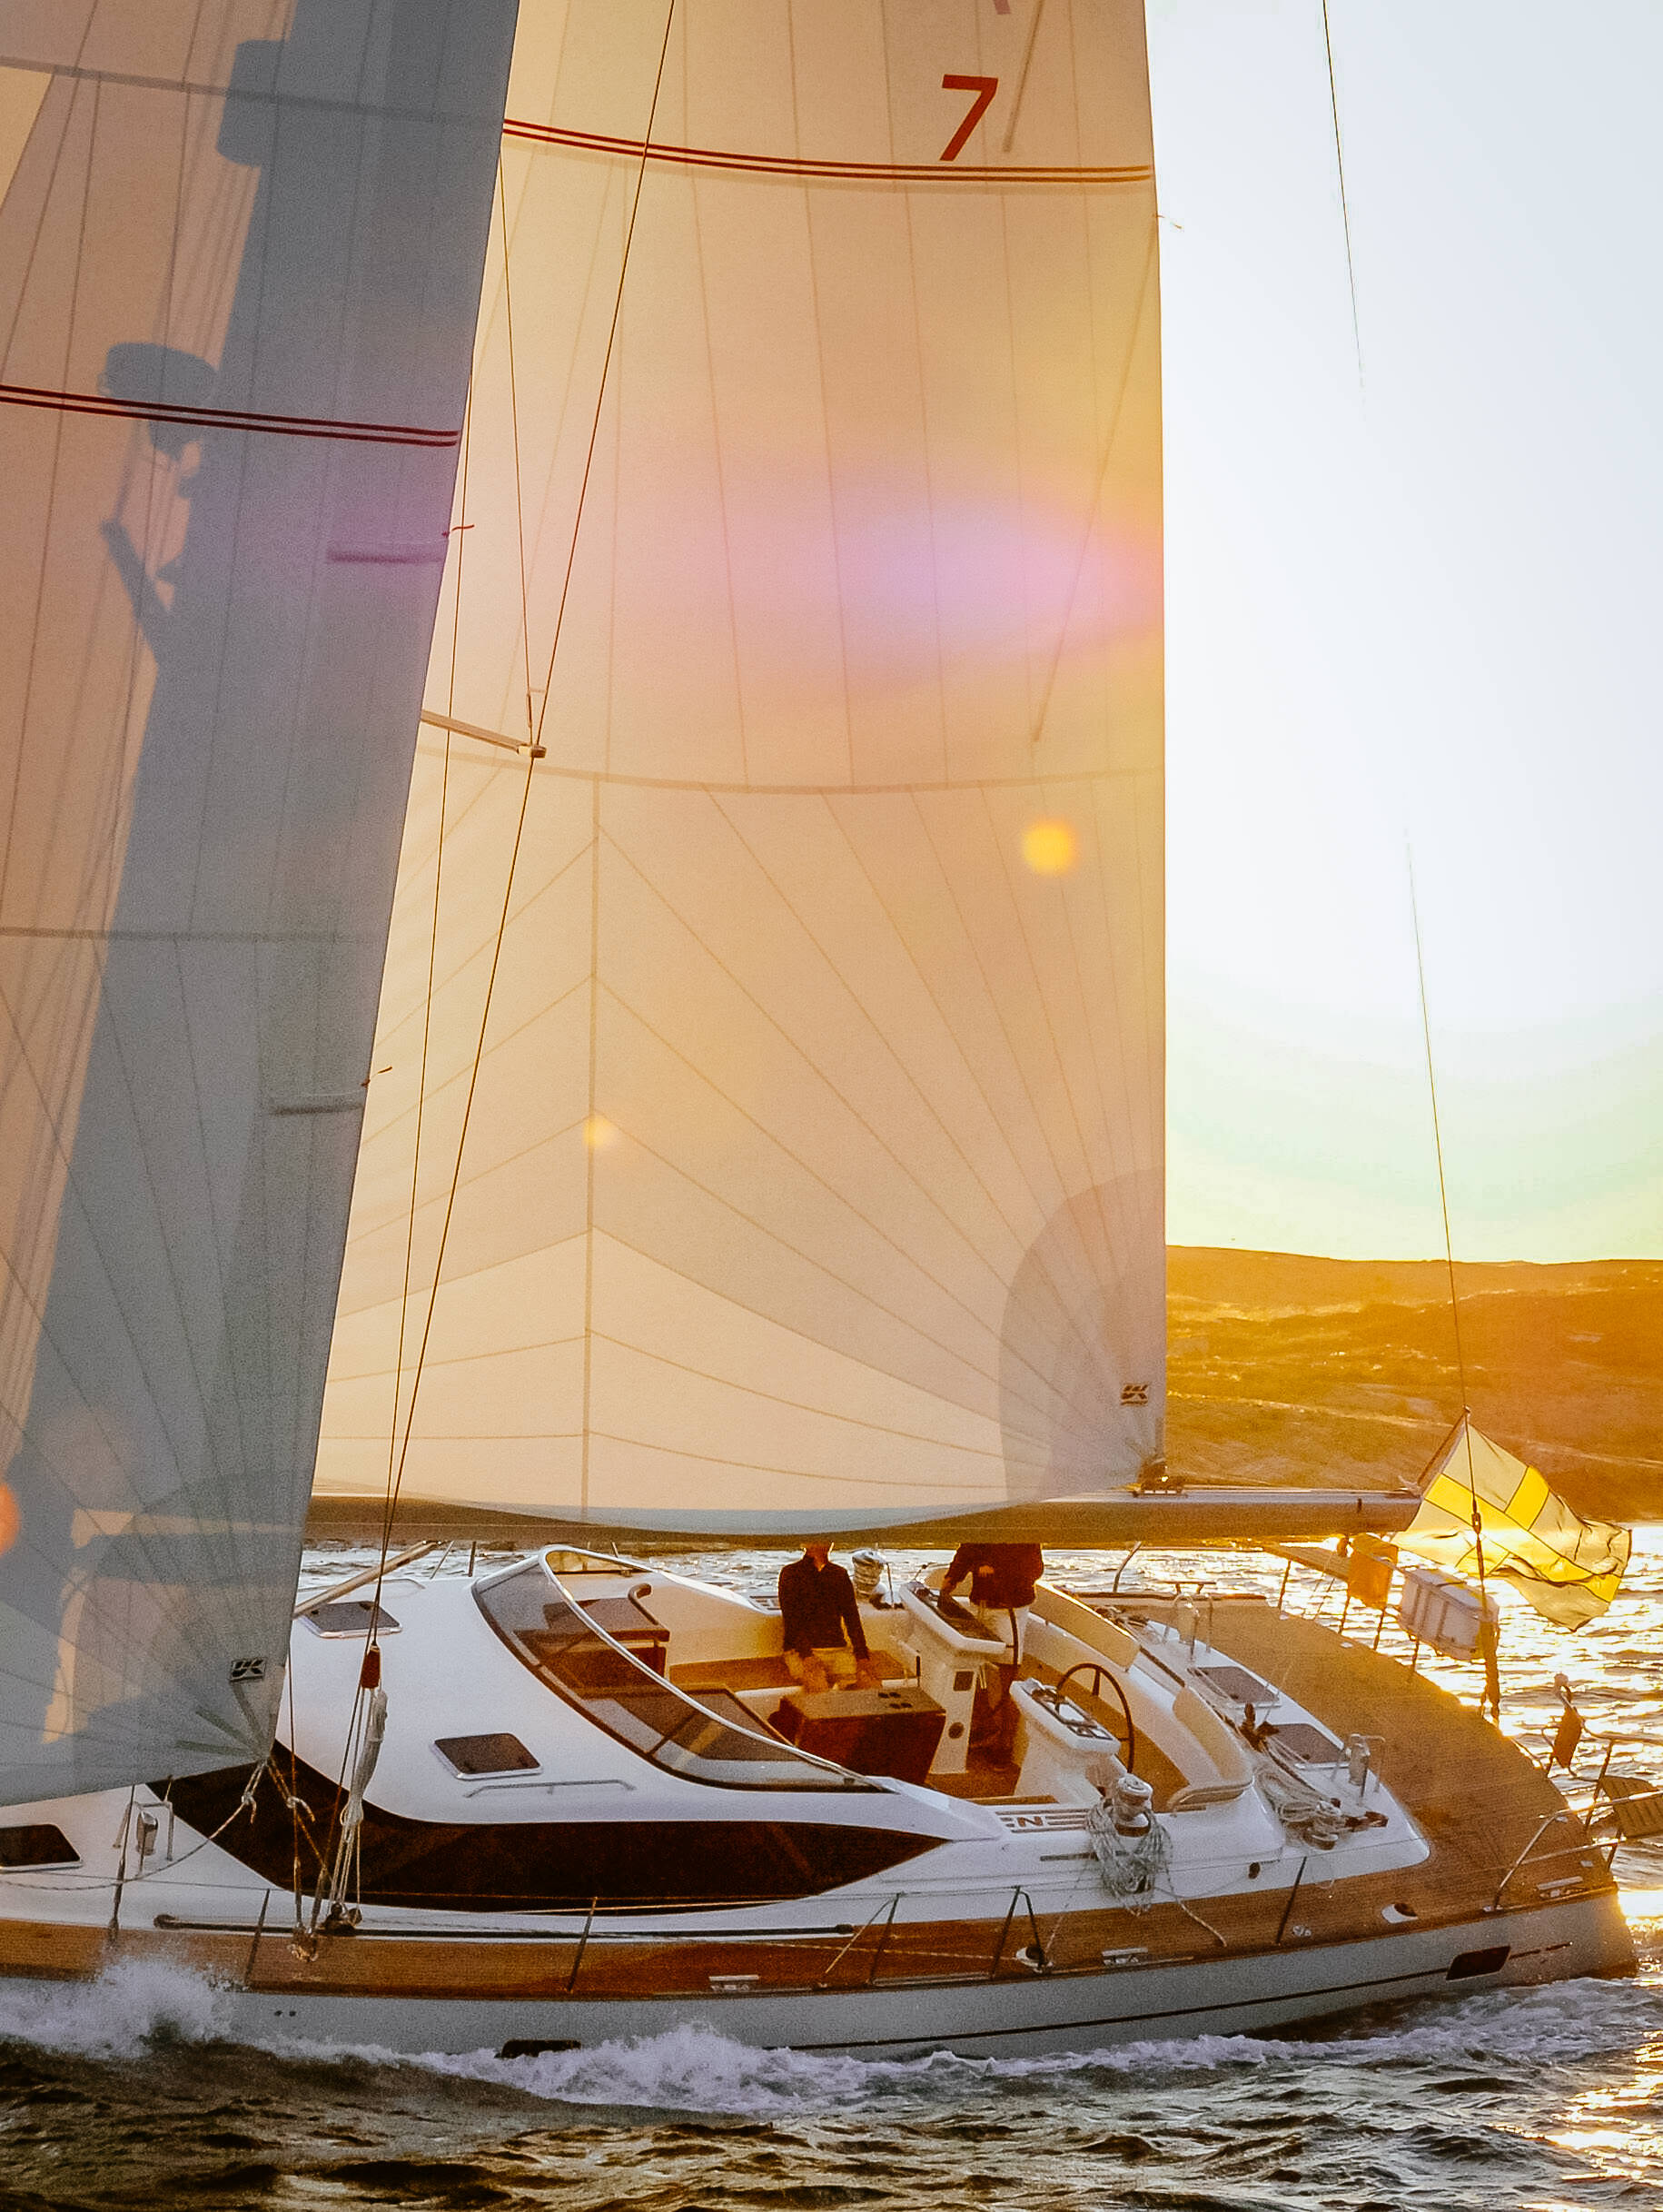 A Najad 570 with a tri-radial Spectra roller-furling performance cruising mainsail in the partially reefed position.